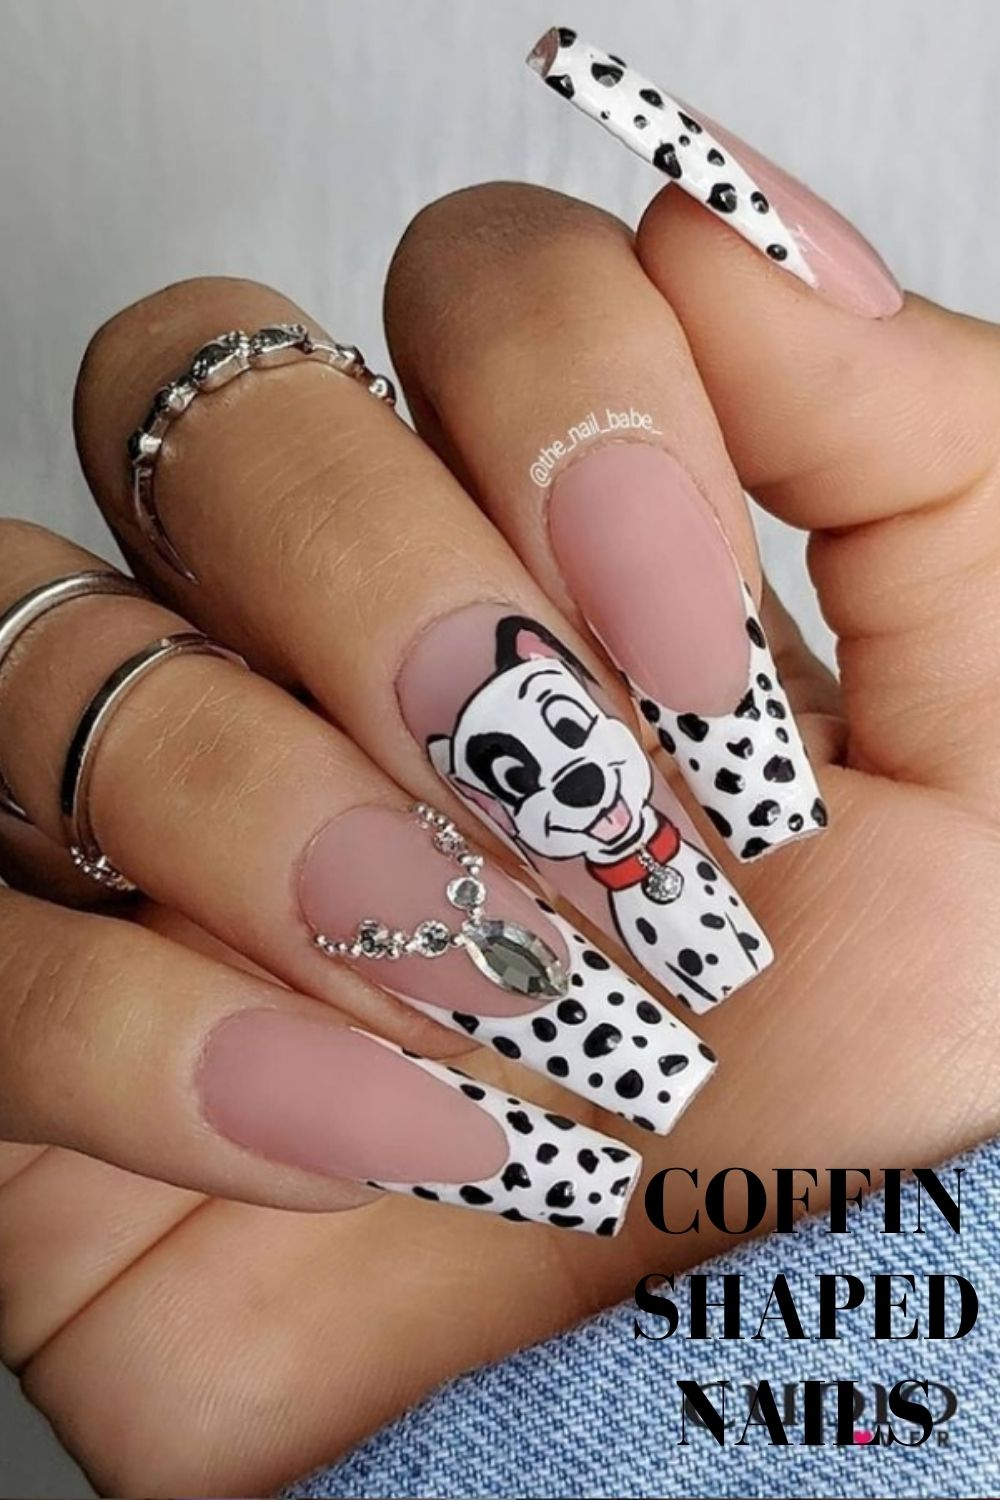 White tip coffin nails with dog